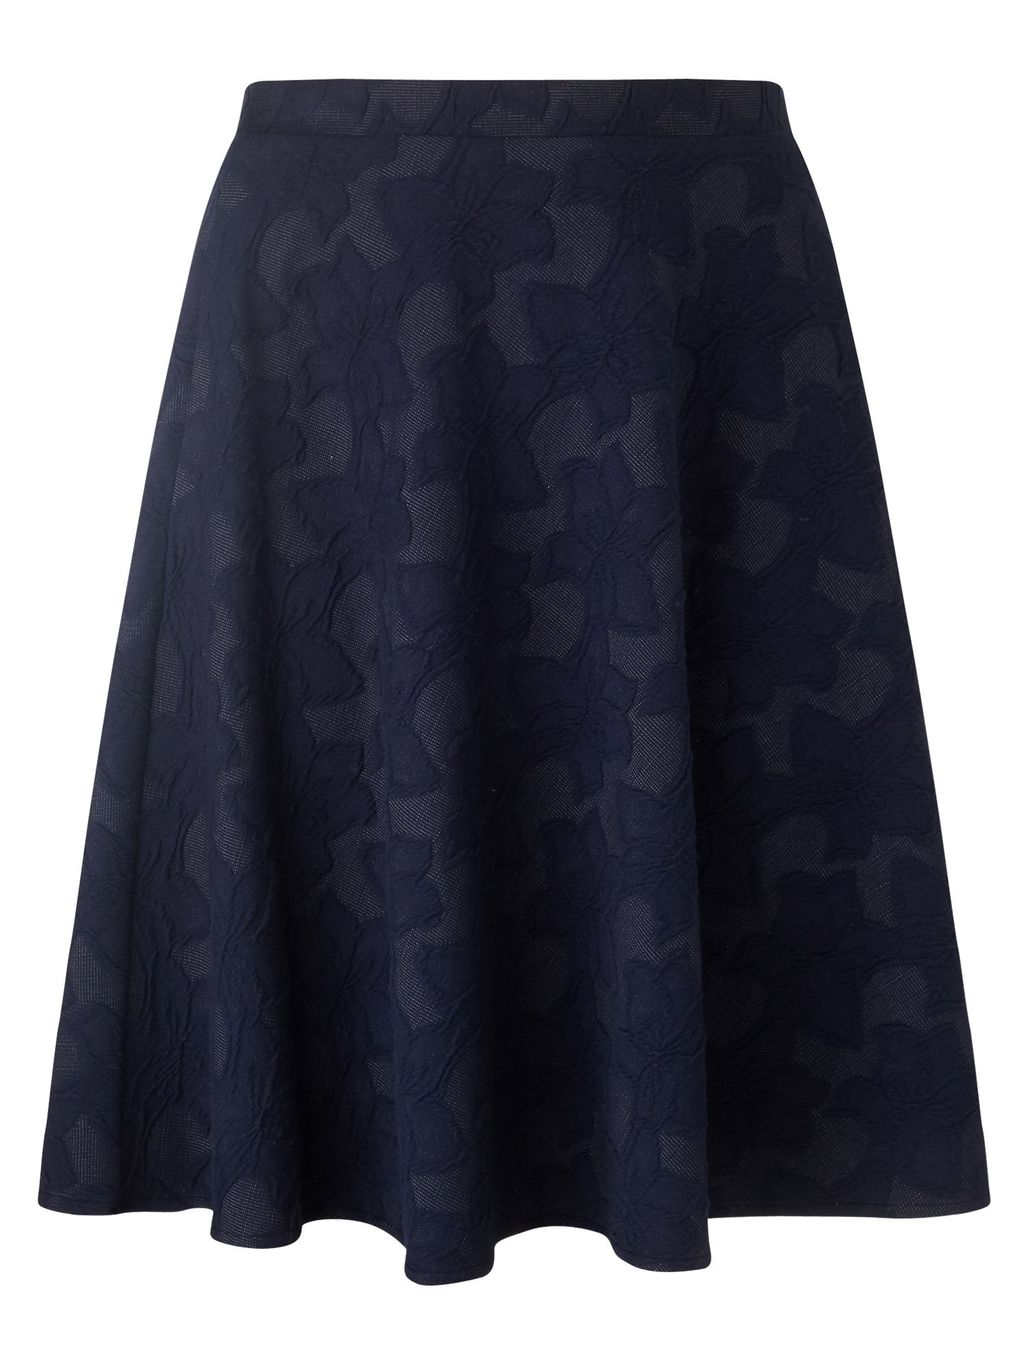 Alison Skirt, Navy - style: full/prom skirt; fit: loose/voluminous; waist: mid/regular rise; predominant colour: navy; length: just above the knee; fibres: cotton - mix; occasions: occasion, creative work; hip detail: subtle/flattering hip detail; waist detail: feature waist detail; pattern type: fabric; pattern: patterned/print; texture group: jersey - stretchy/drapey; pattern size: standard (bottom); season: s/s 2016; wardrobe: highlight